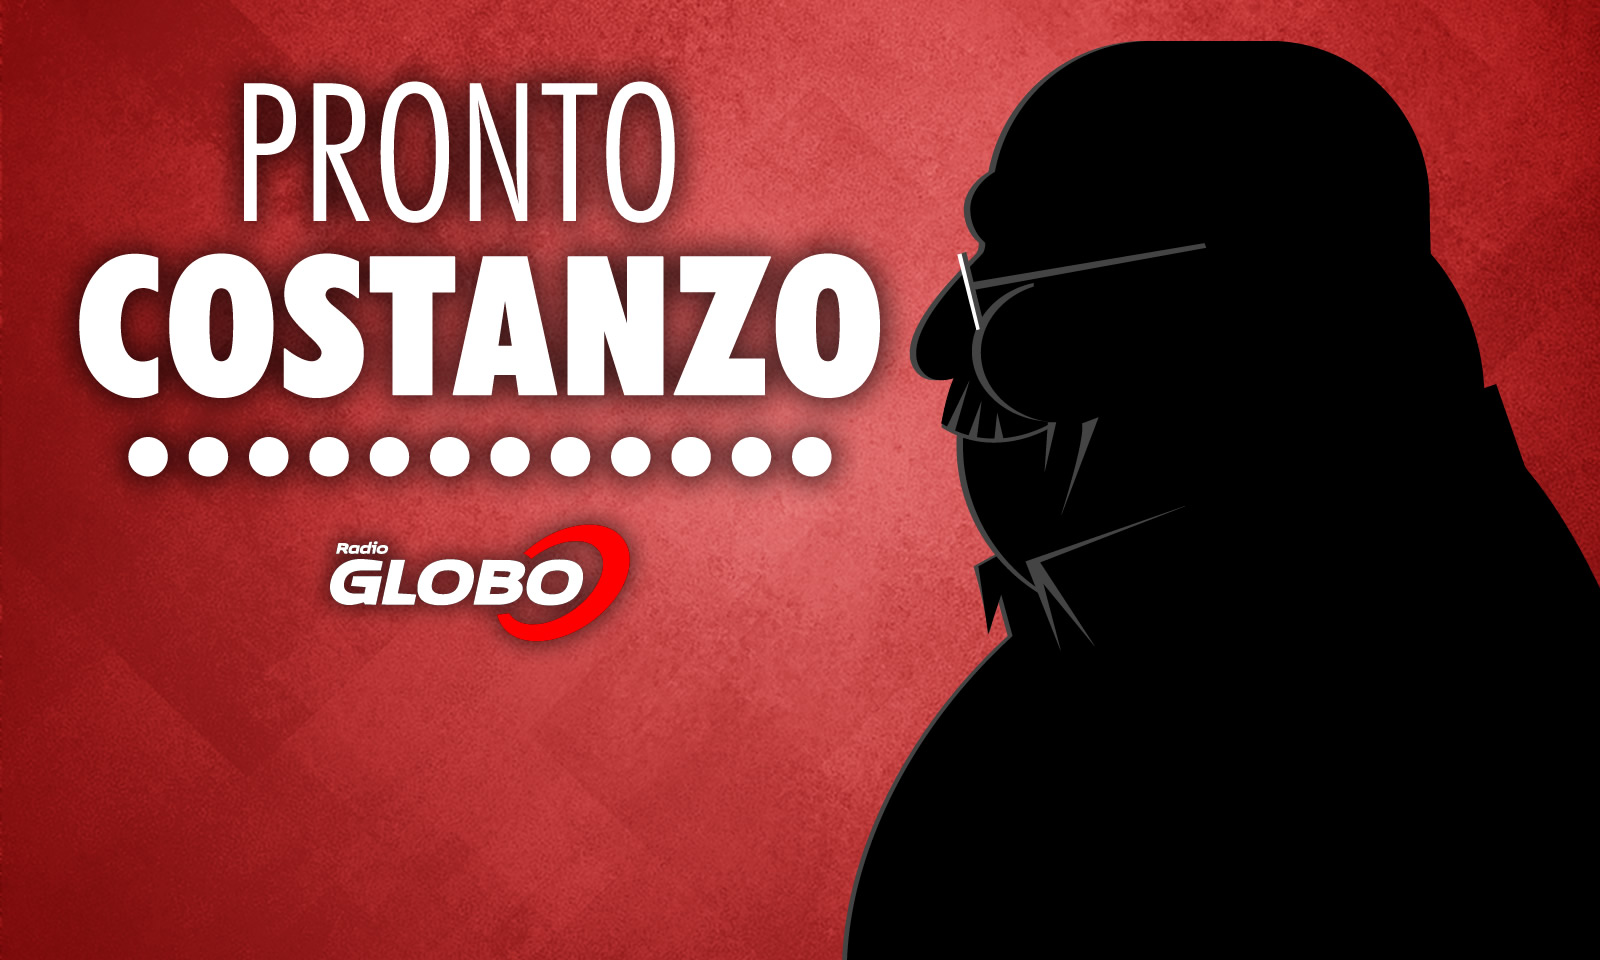 Pronto Costanzo - Radio Globo